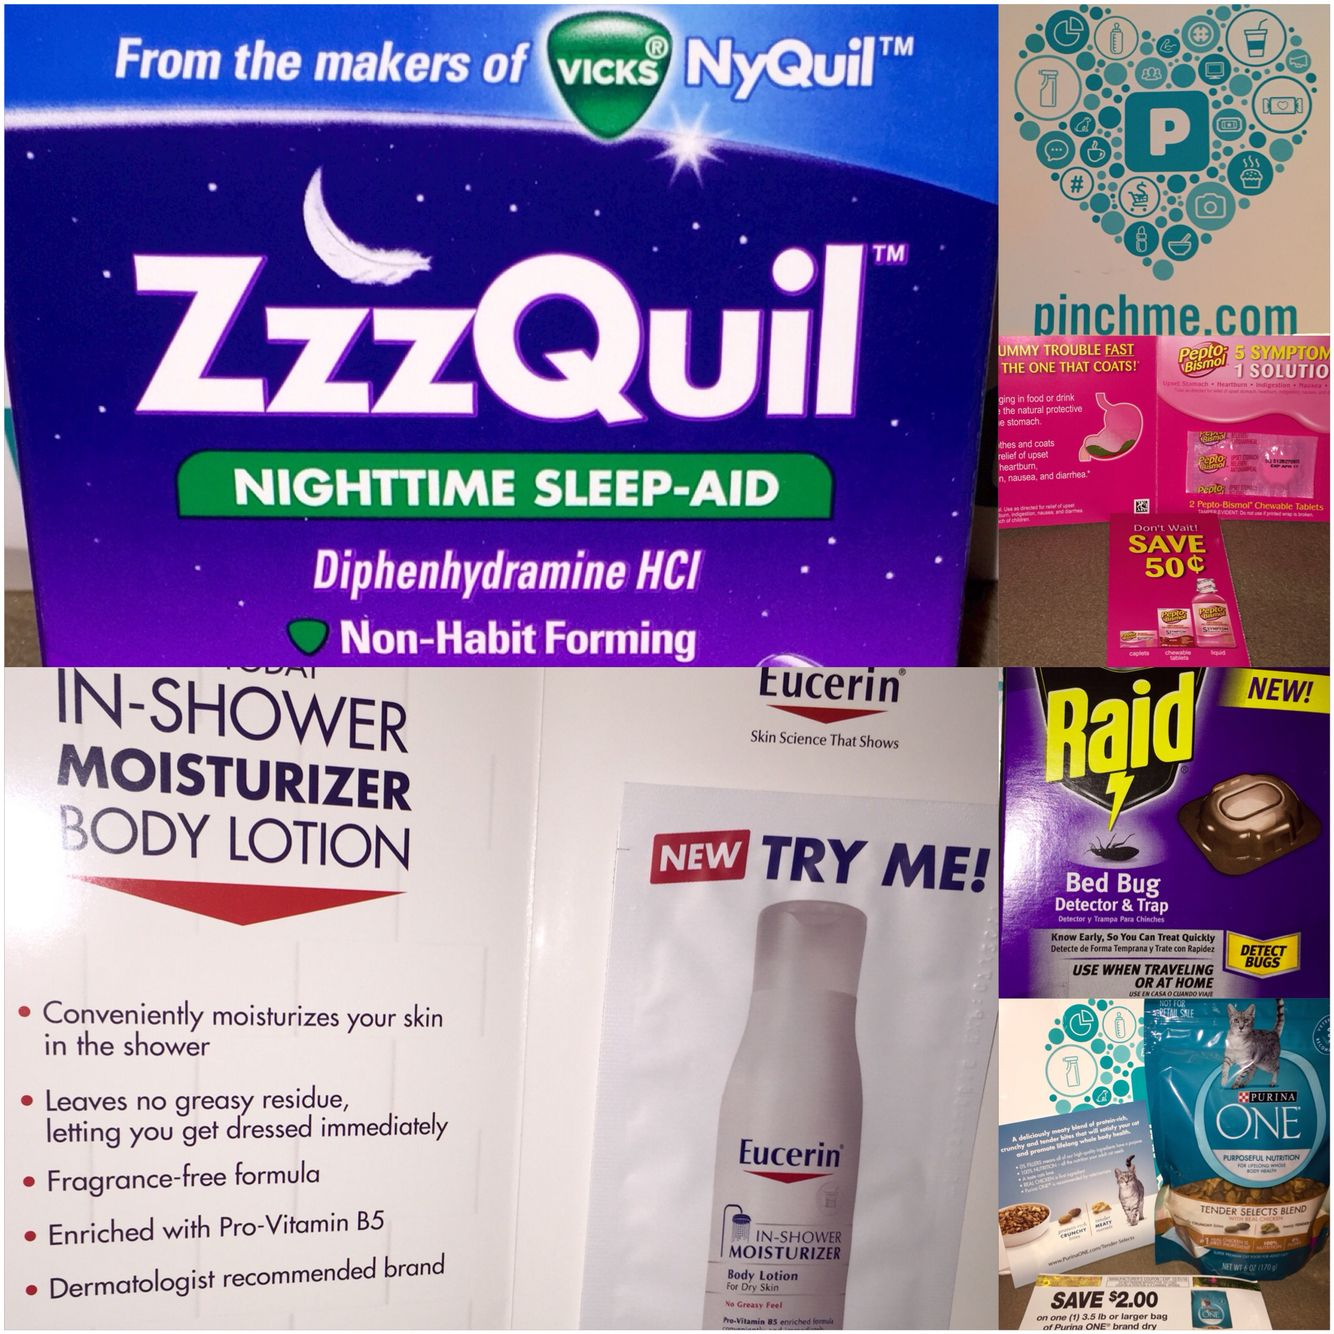 June 2016 Nyquil Zzzquil Raid Bed Bug Detector Purina One Catfood Pepto Bismol Eucerin Sleep Lover Nighttime Sleep Aid Nyquil